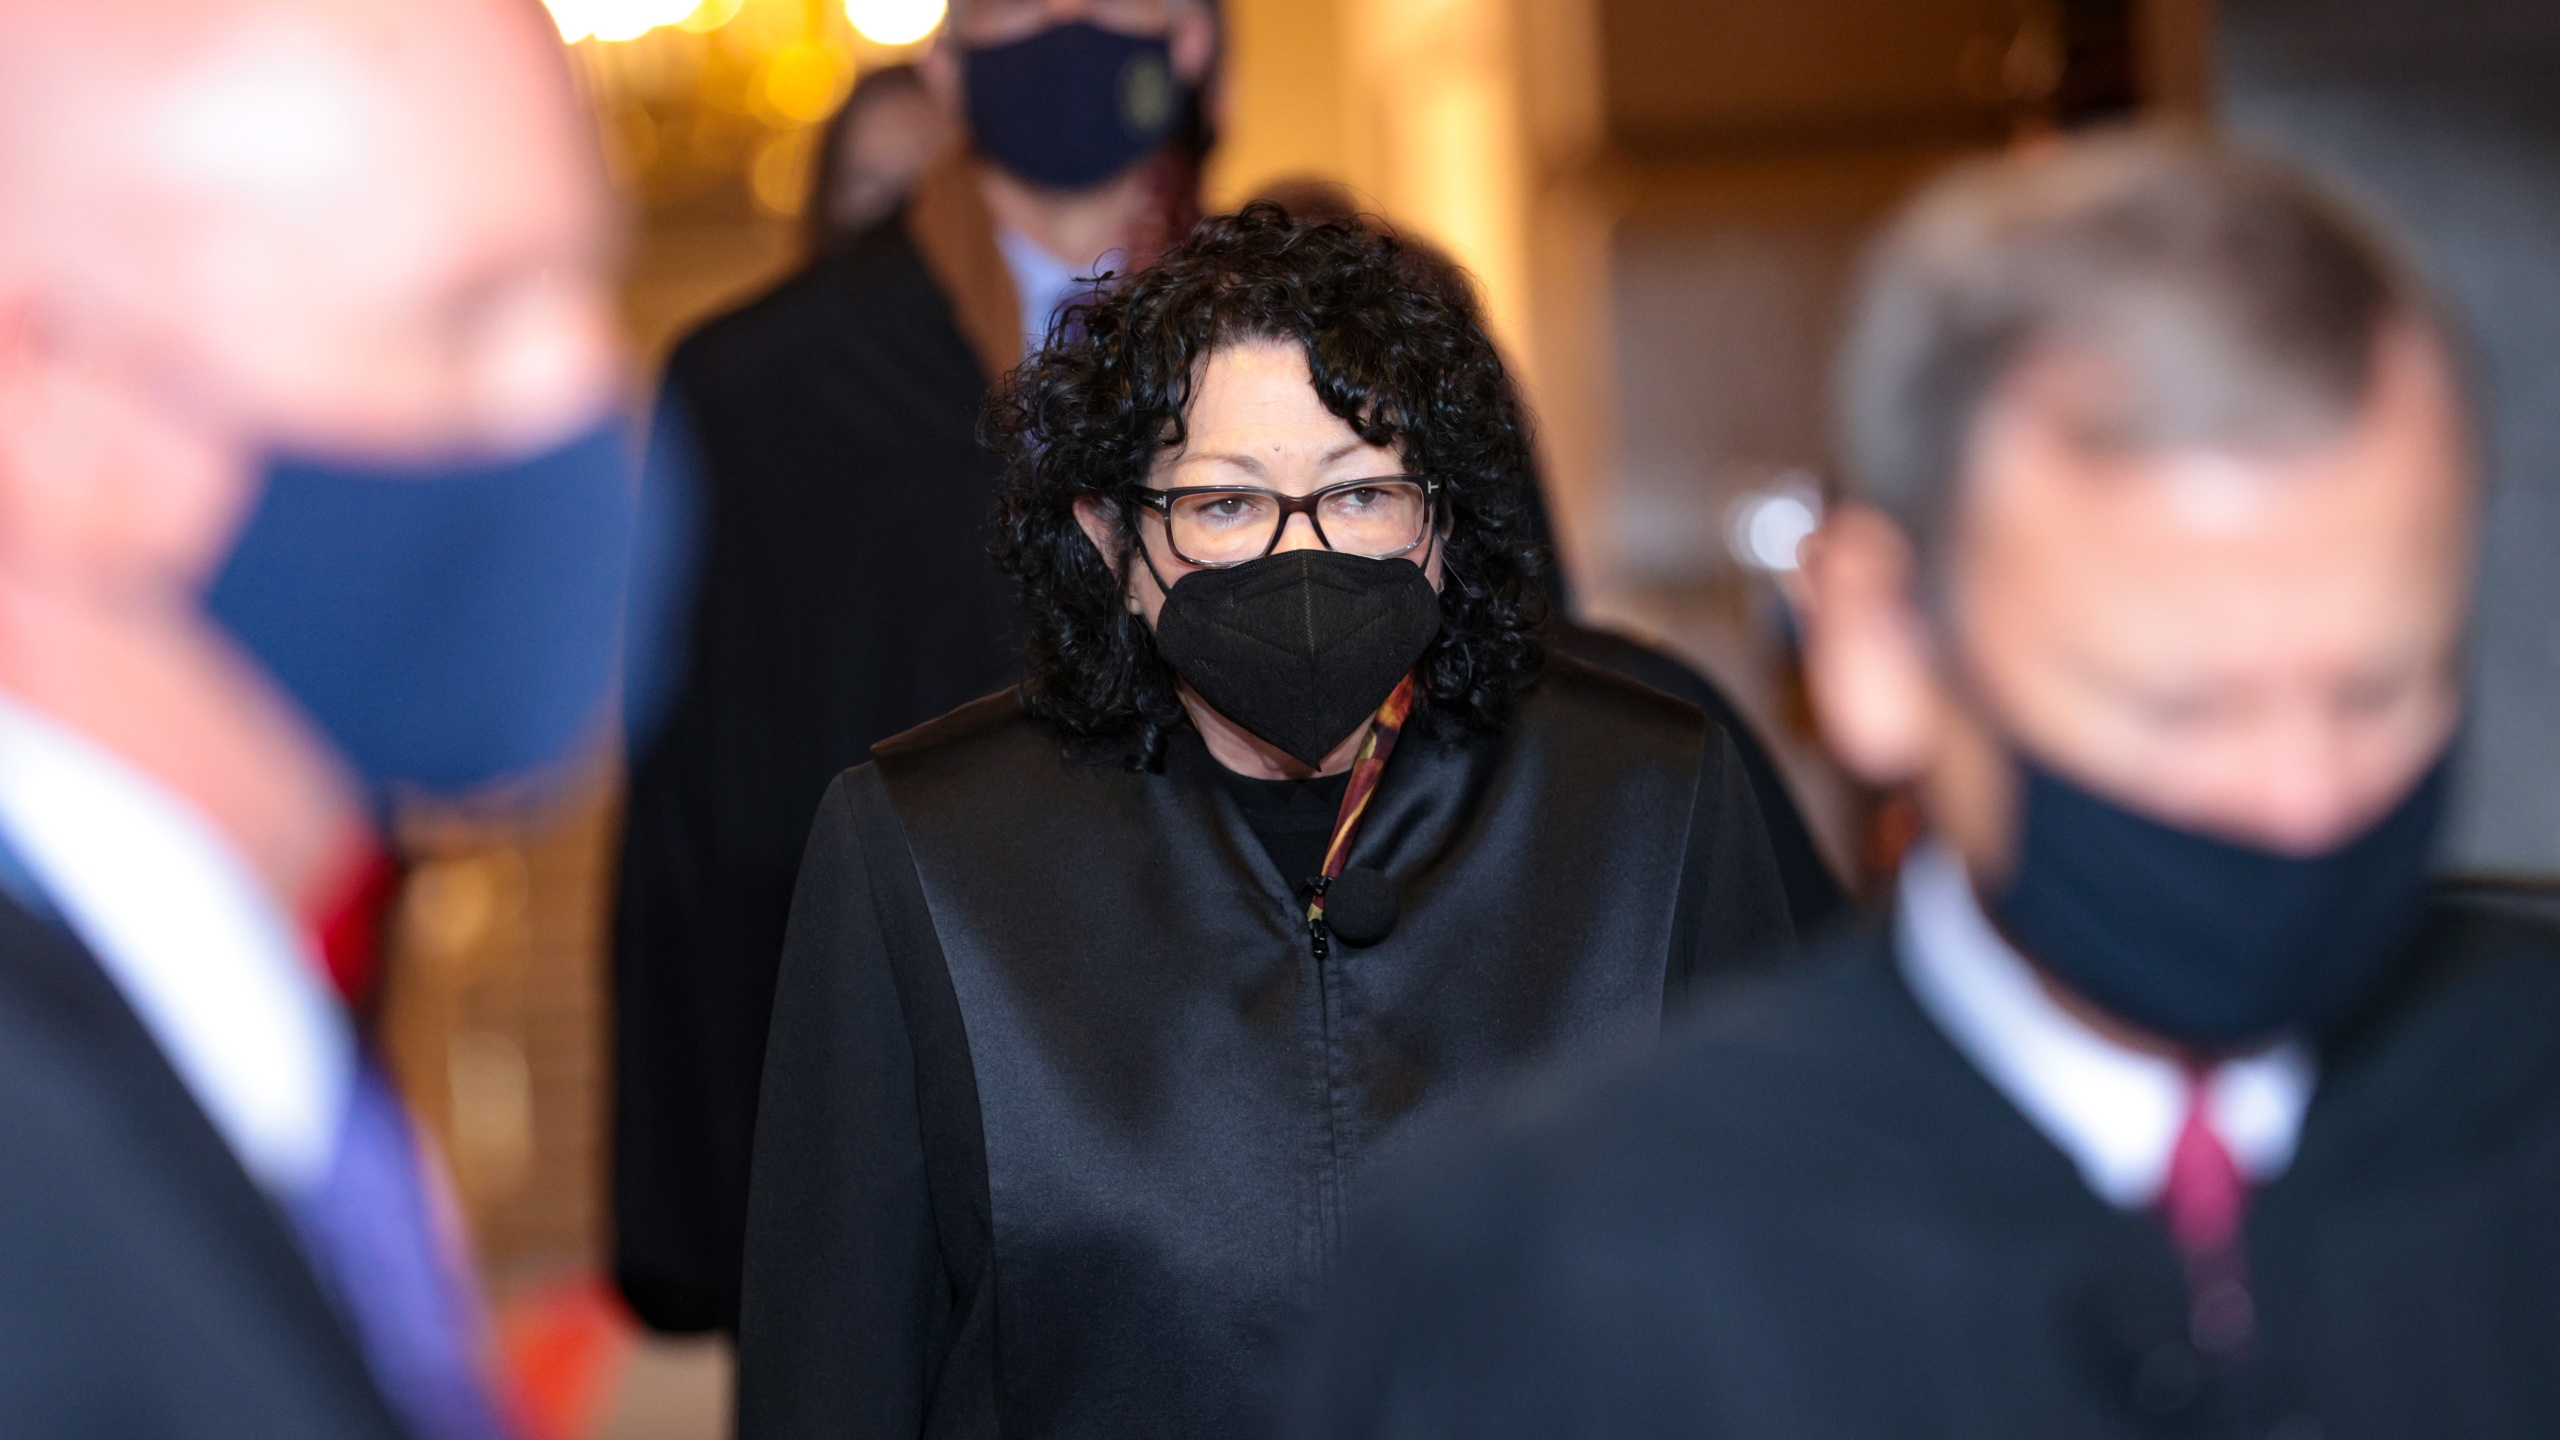 Supreme Court Associate Justice Sonia Sotomayor arrives to the inauguration of President Joe Biden on the West Front of the U.S. Capitol on January 20, 2021 in Washington, DC. (Win McNamee/Getty Images)